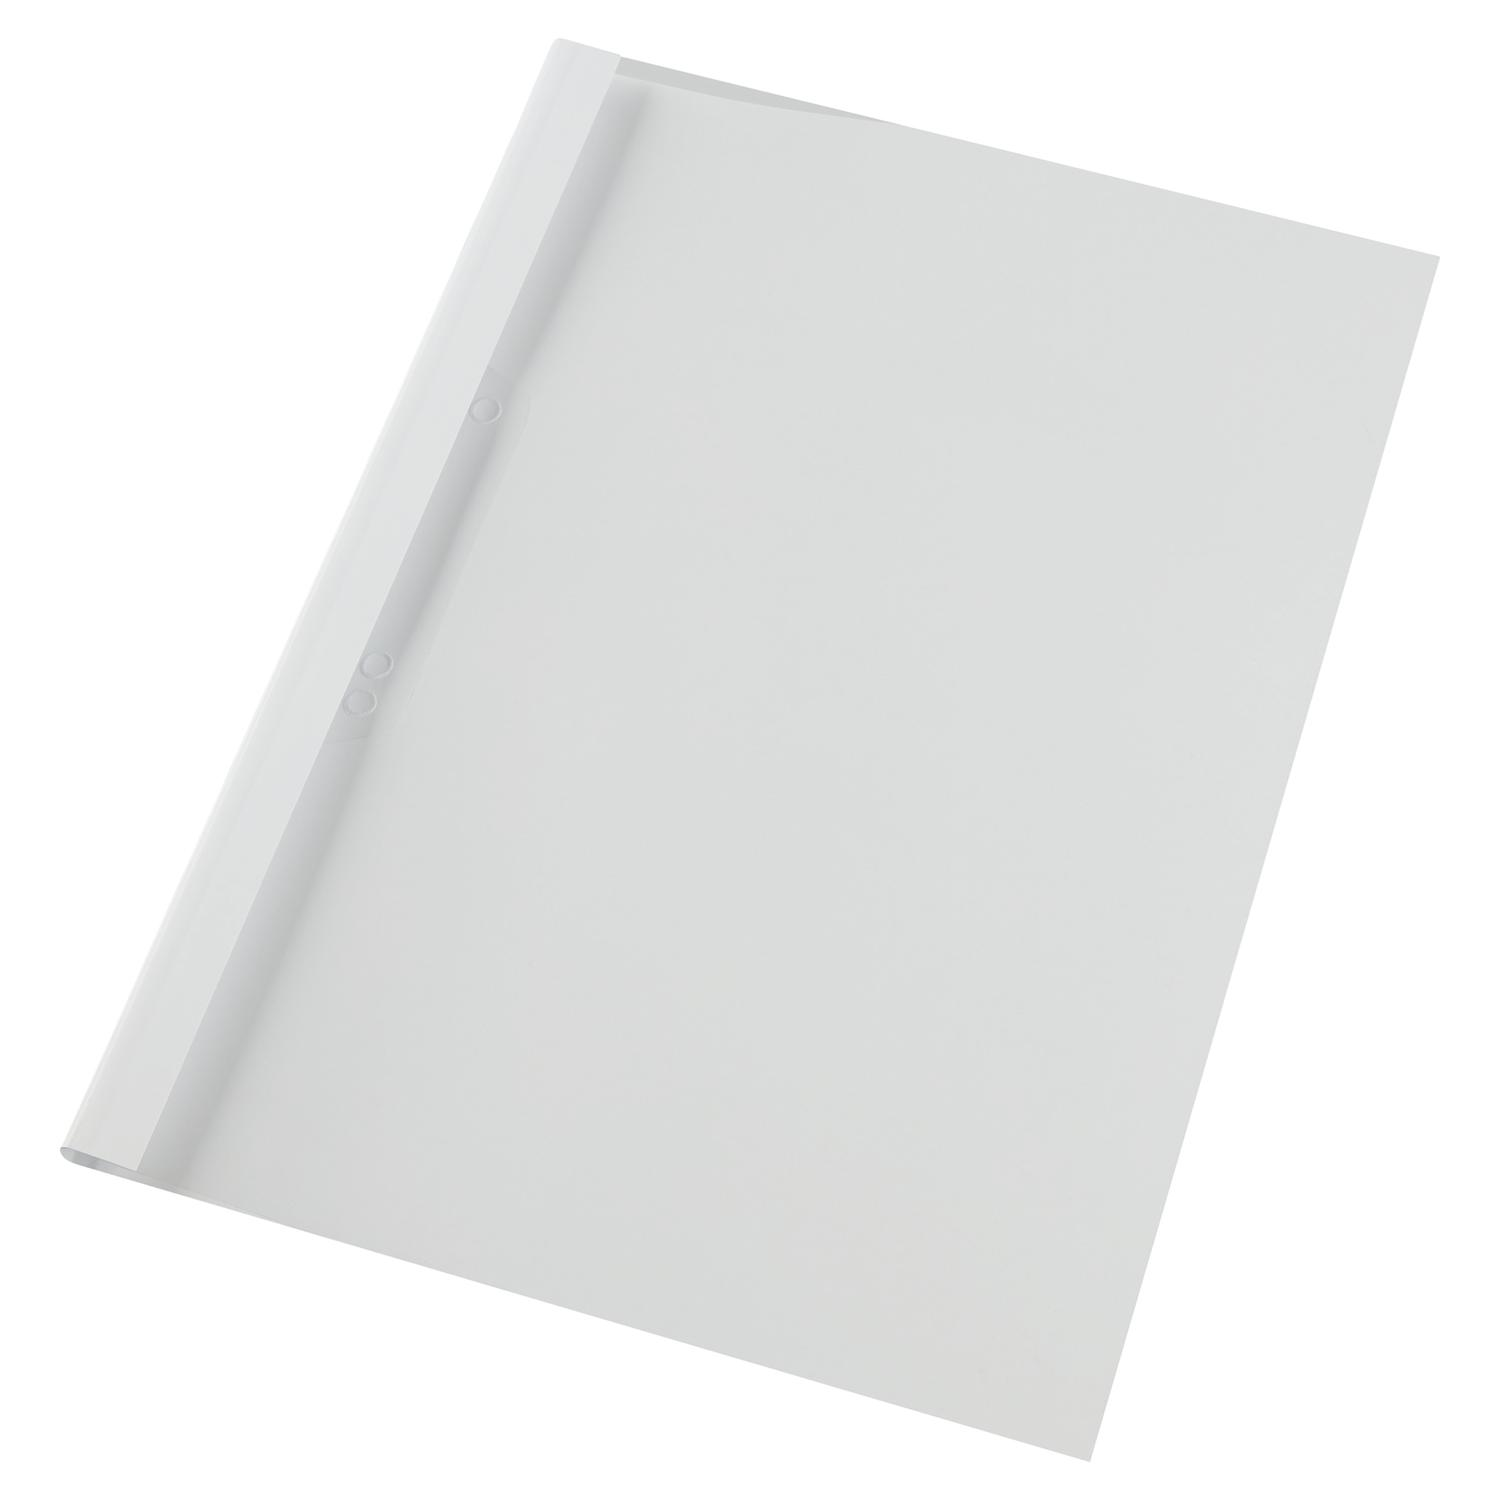 GBC A4 Thermal Binding Covers 4mm Gloss White PK1000